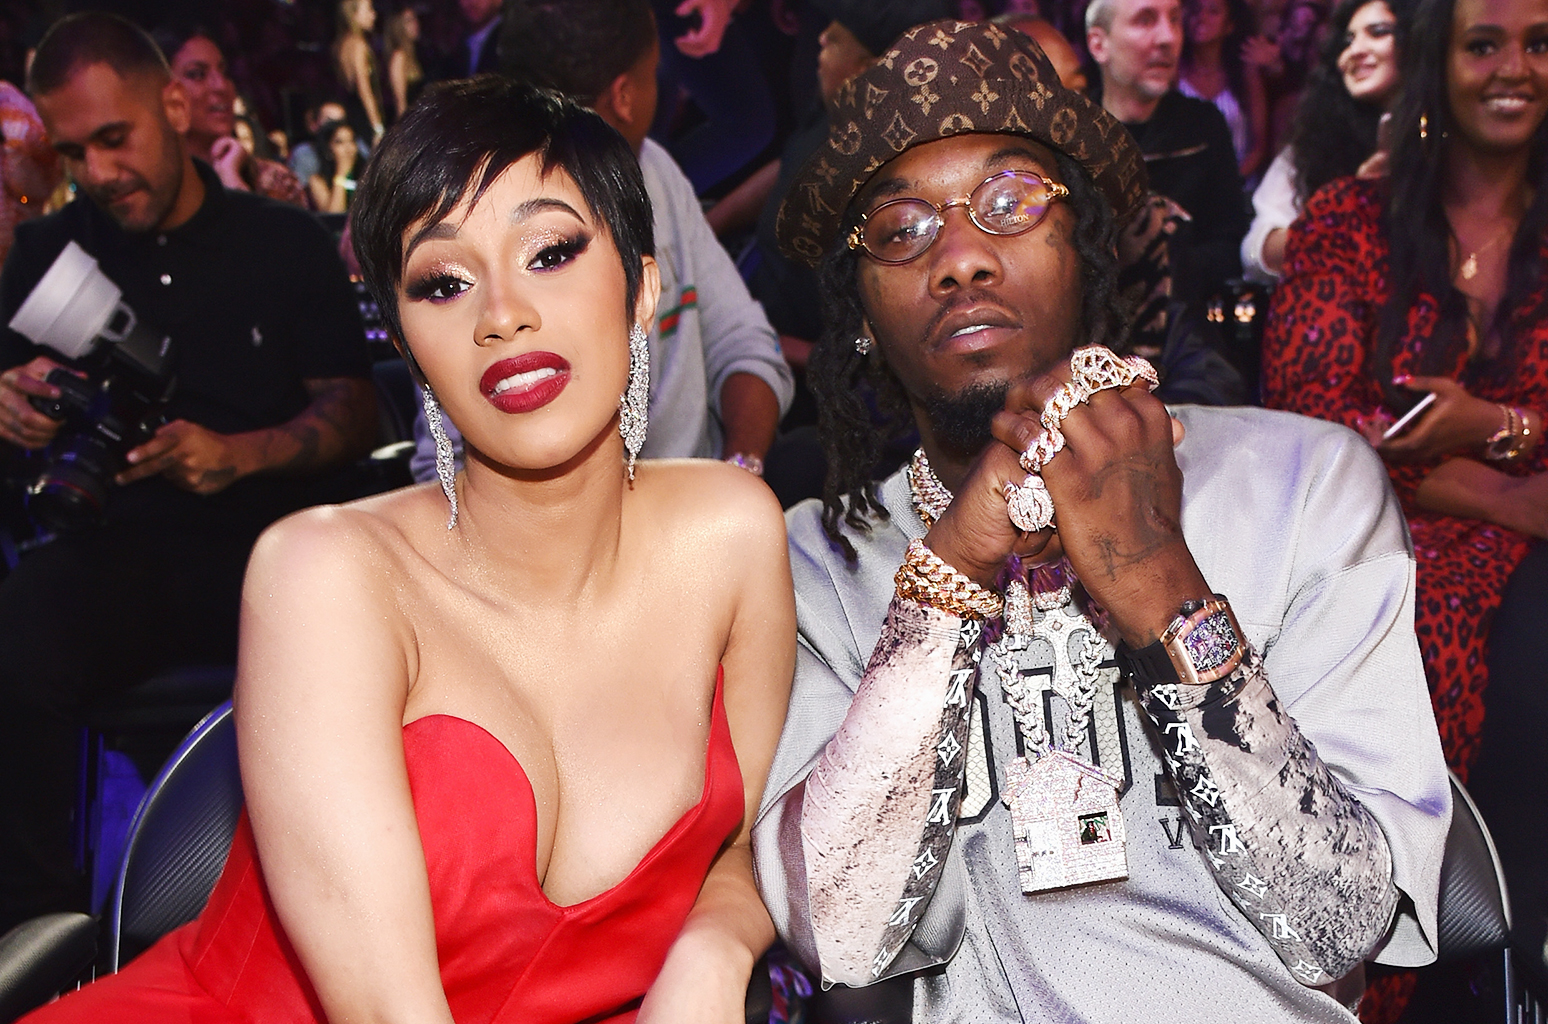 Offset Channeled Michael Jackson For Halloween - Check Out This Video